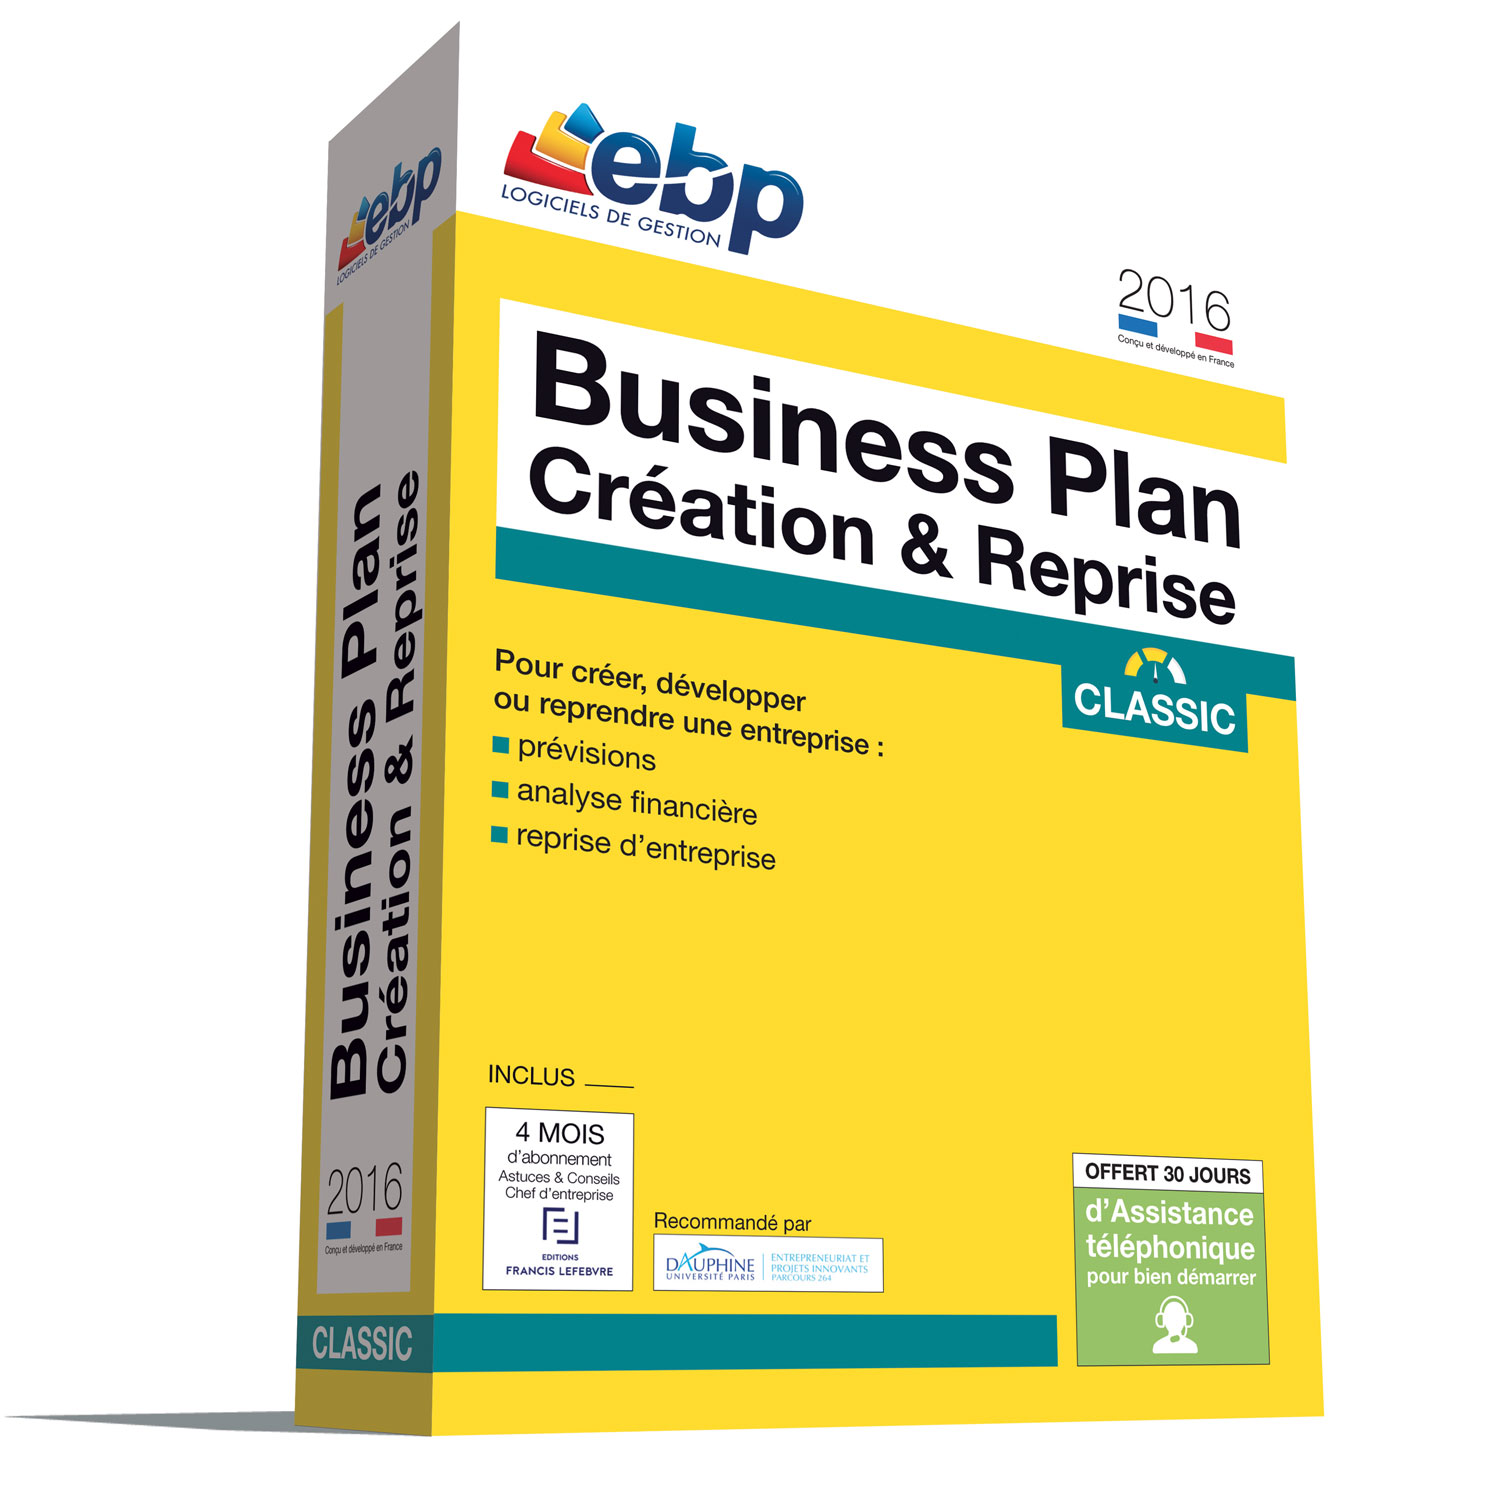 Ebp business plan cr ation reprise classic 2016 for Logiciel creation de plan